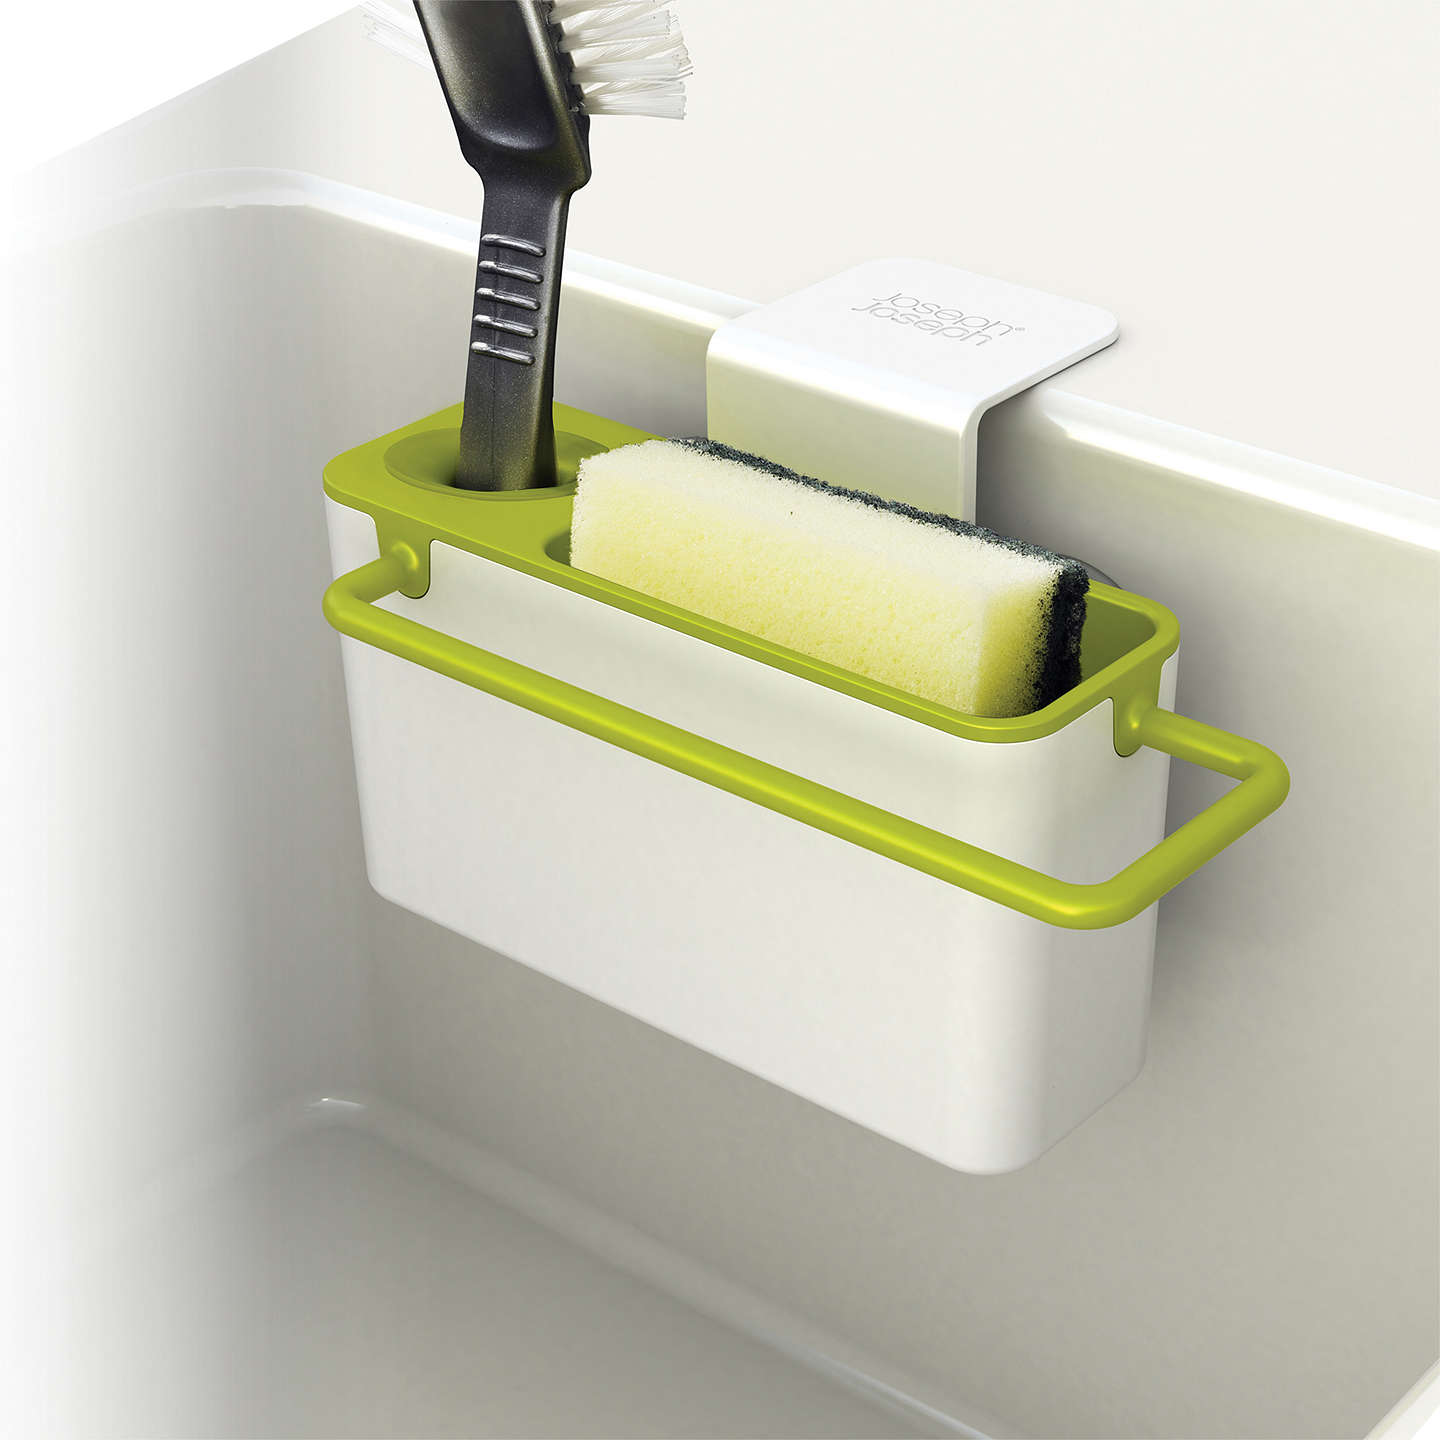 Buyjoseph Joseph Sink Aid In Sink Caddy, White Green Online At